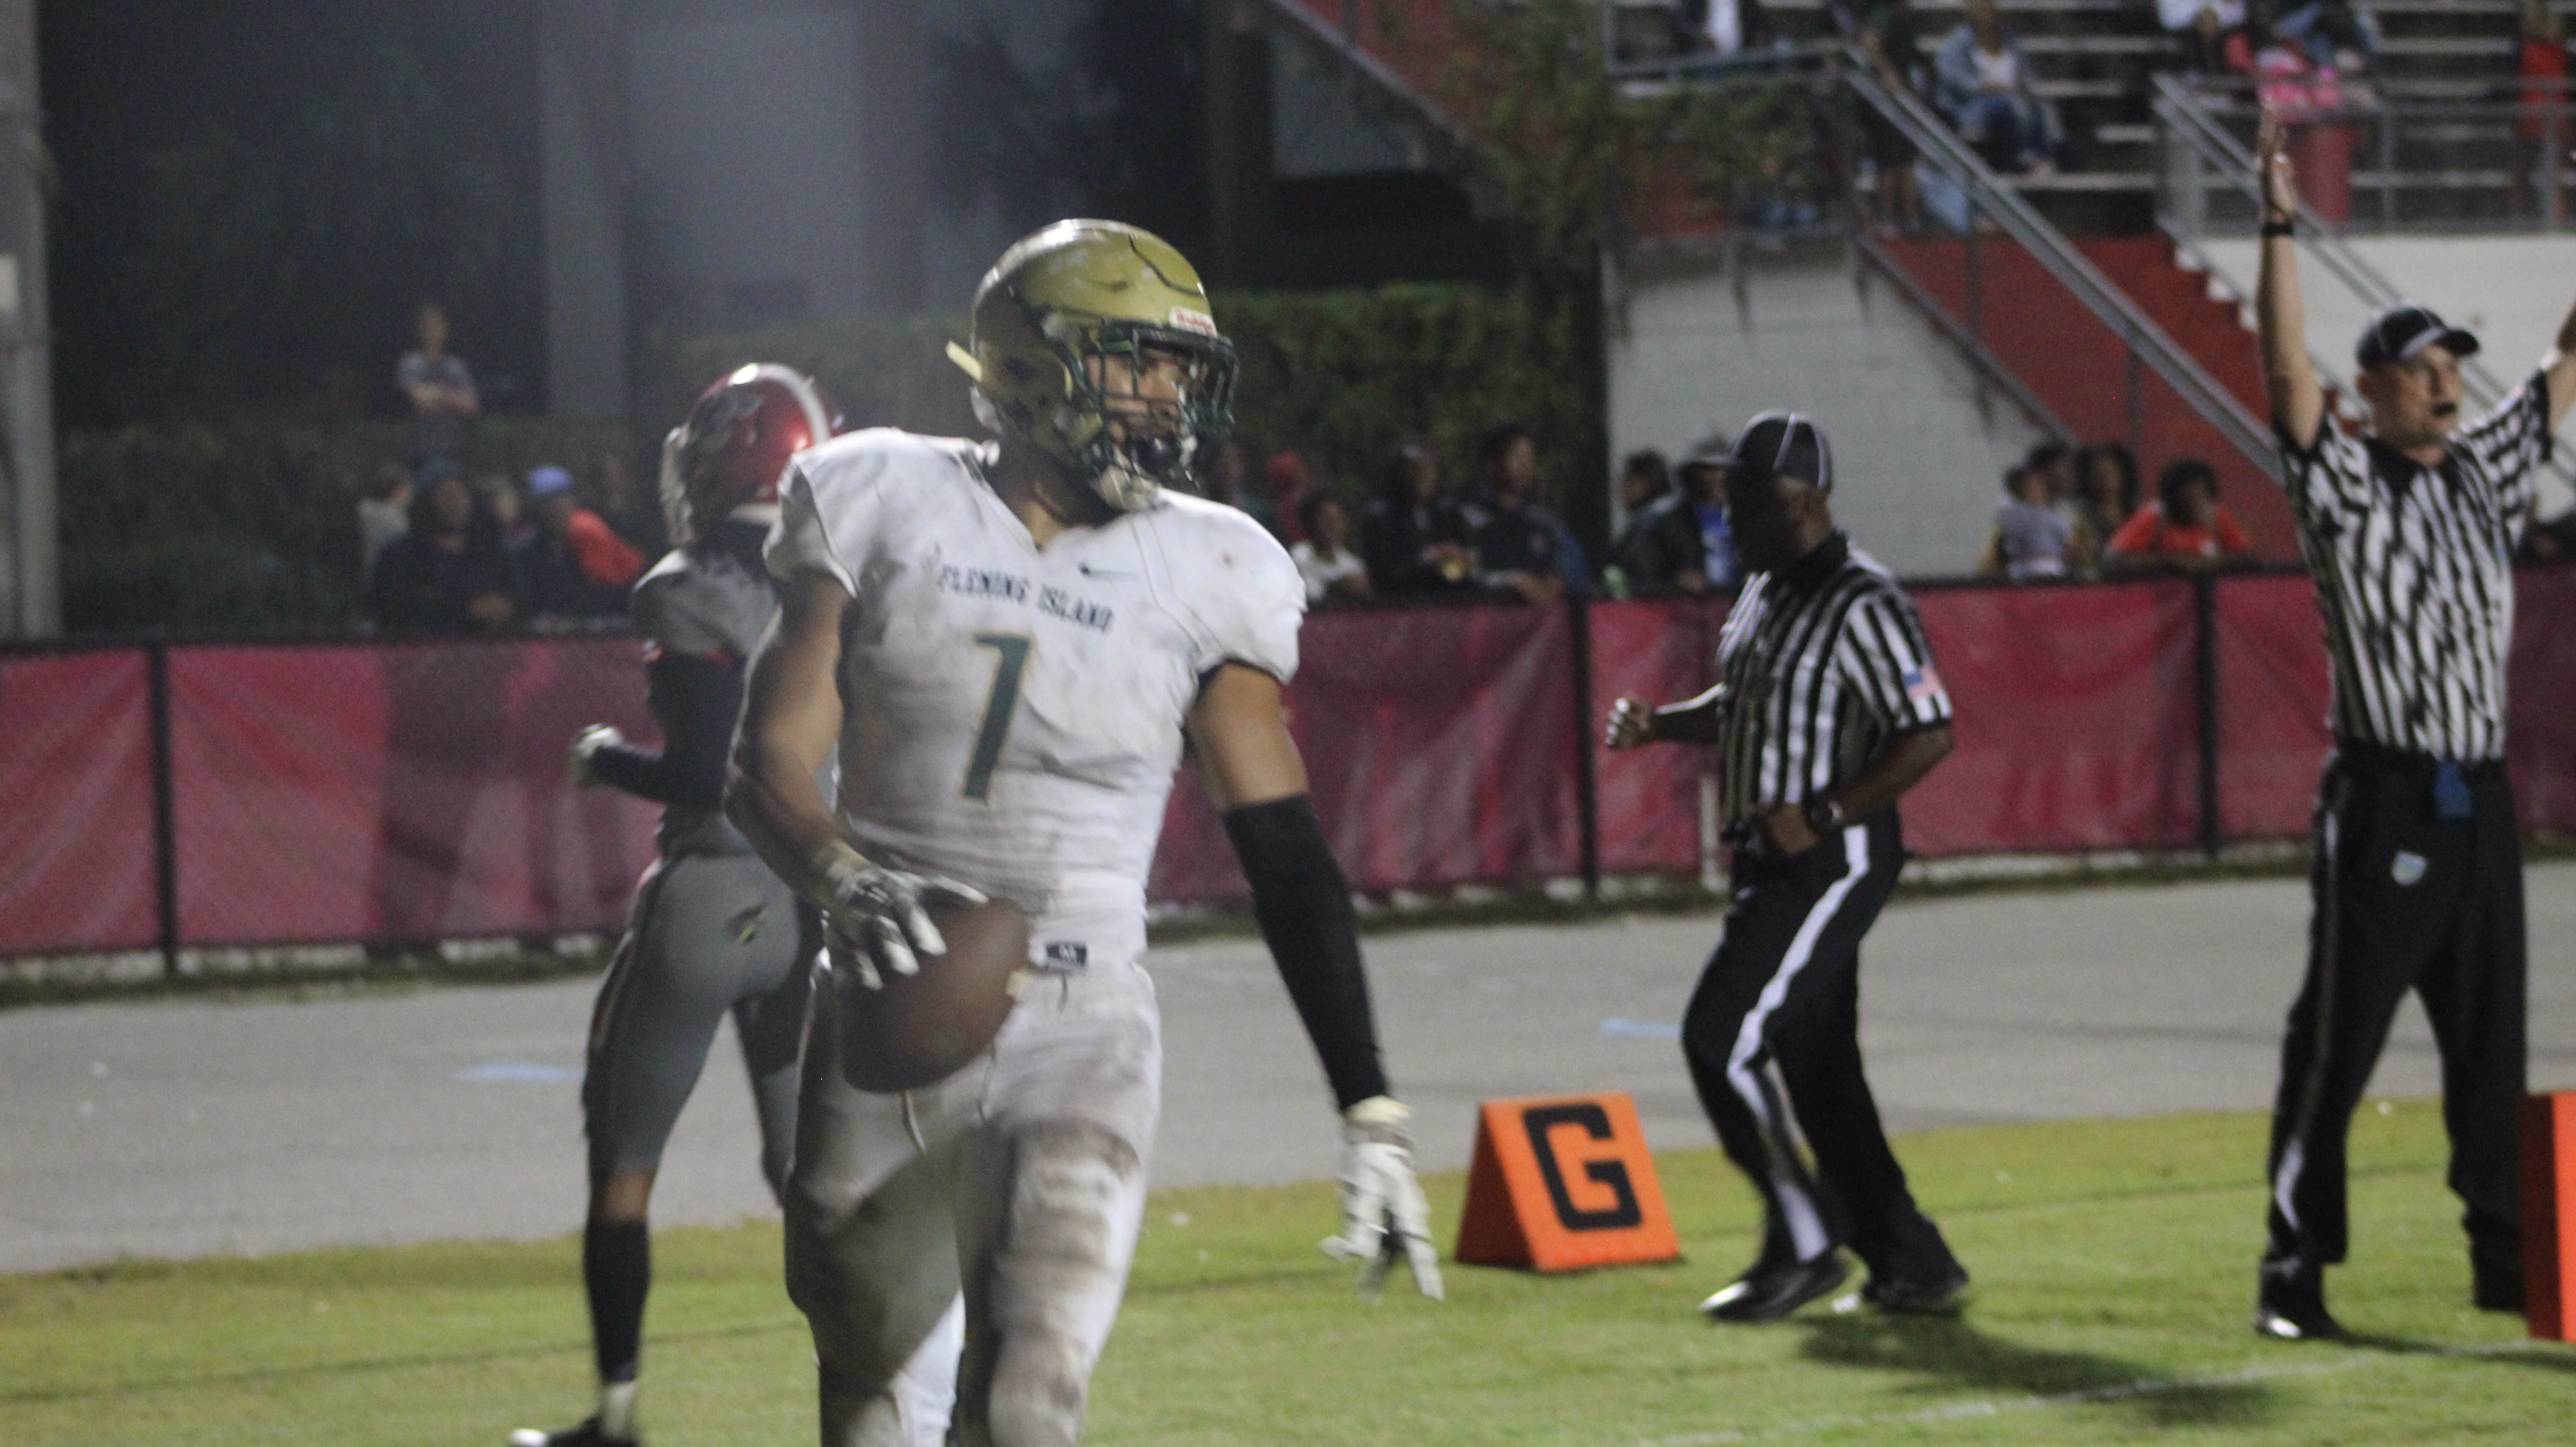 Fleming Island And Smenda Smote Edgewater In Playoff War Of Eagles